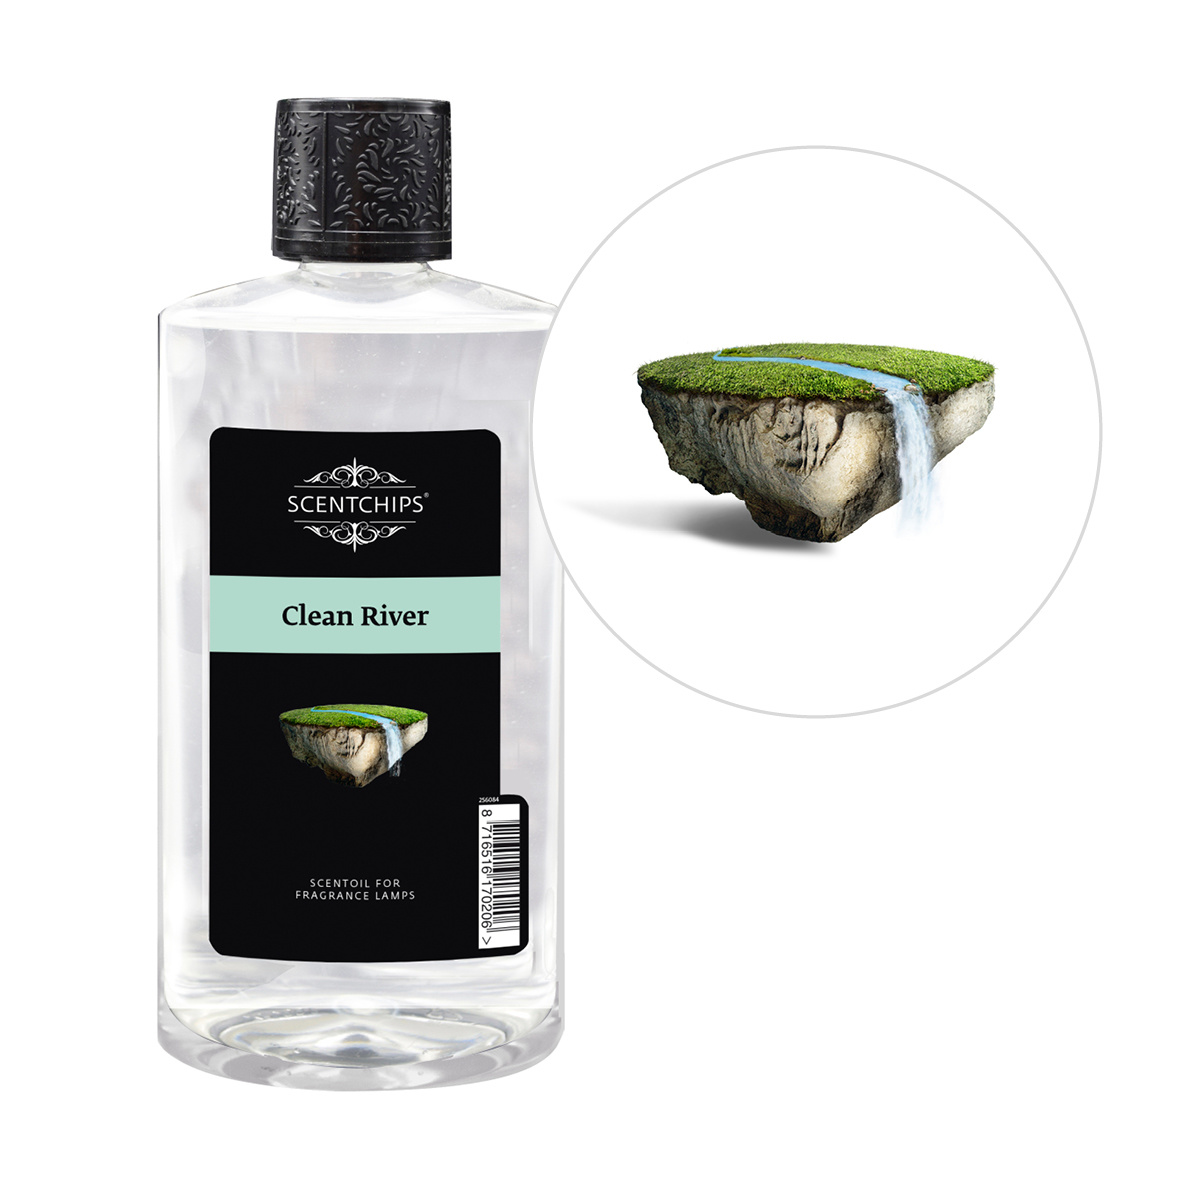 Scentchips® Clean River fragrance oil ScentOil